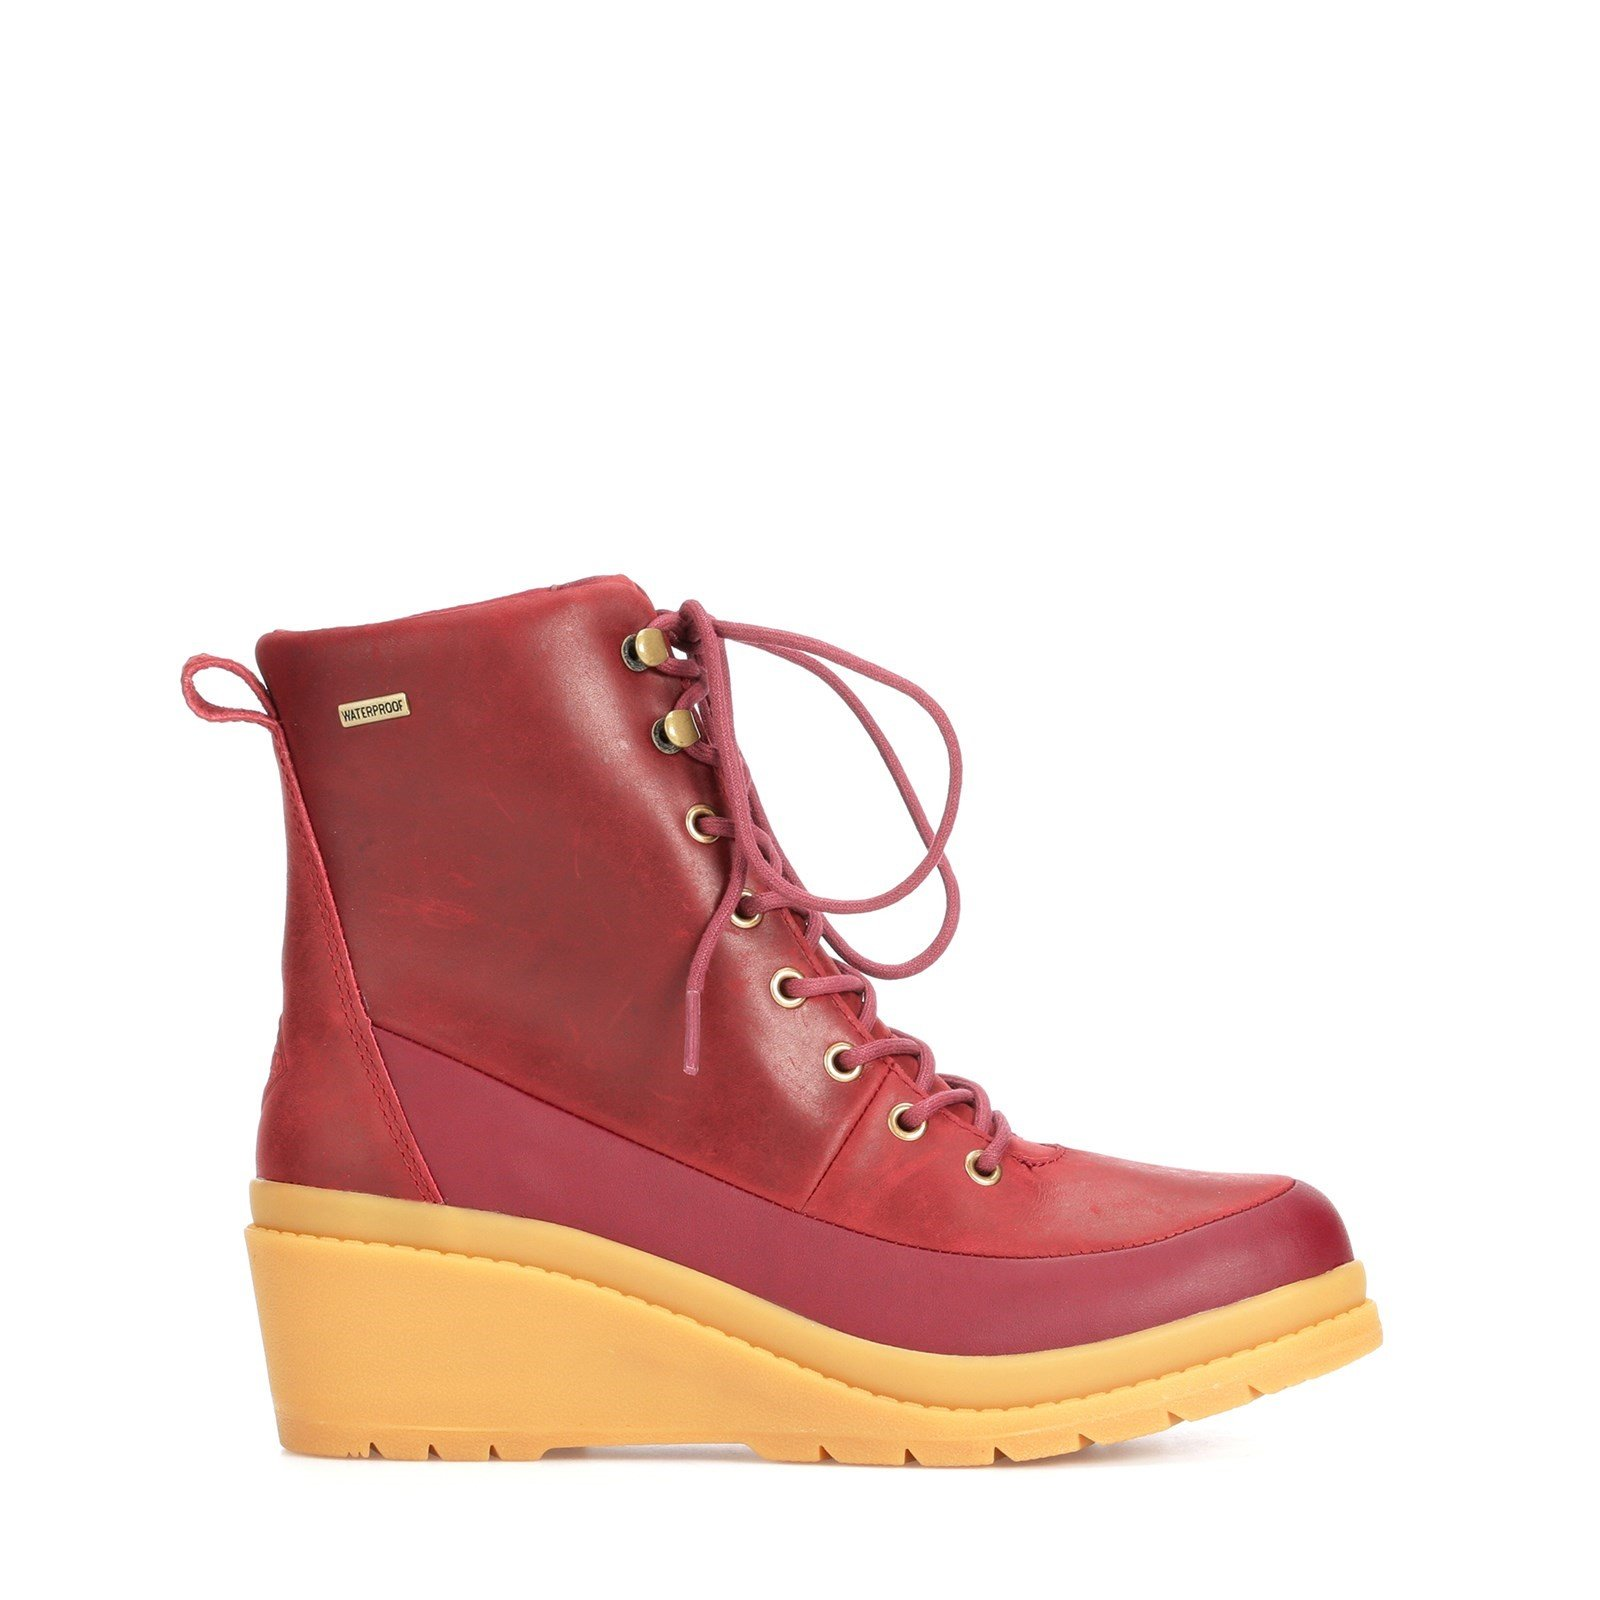 Muck Boots Women's Liberty Leather Ankle Boots Various Colours 31813 - Cordovan 3